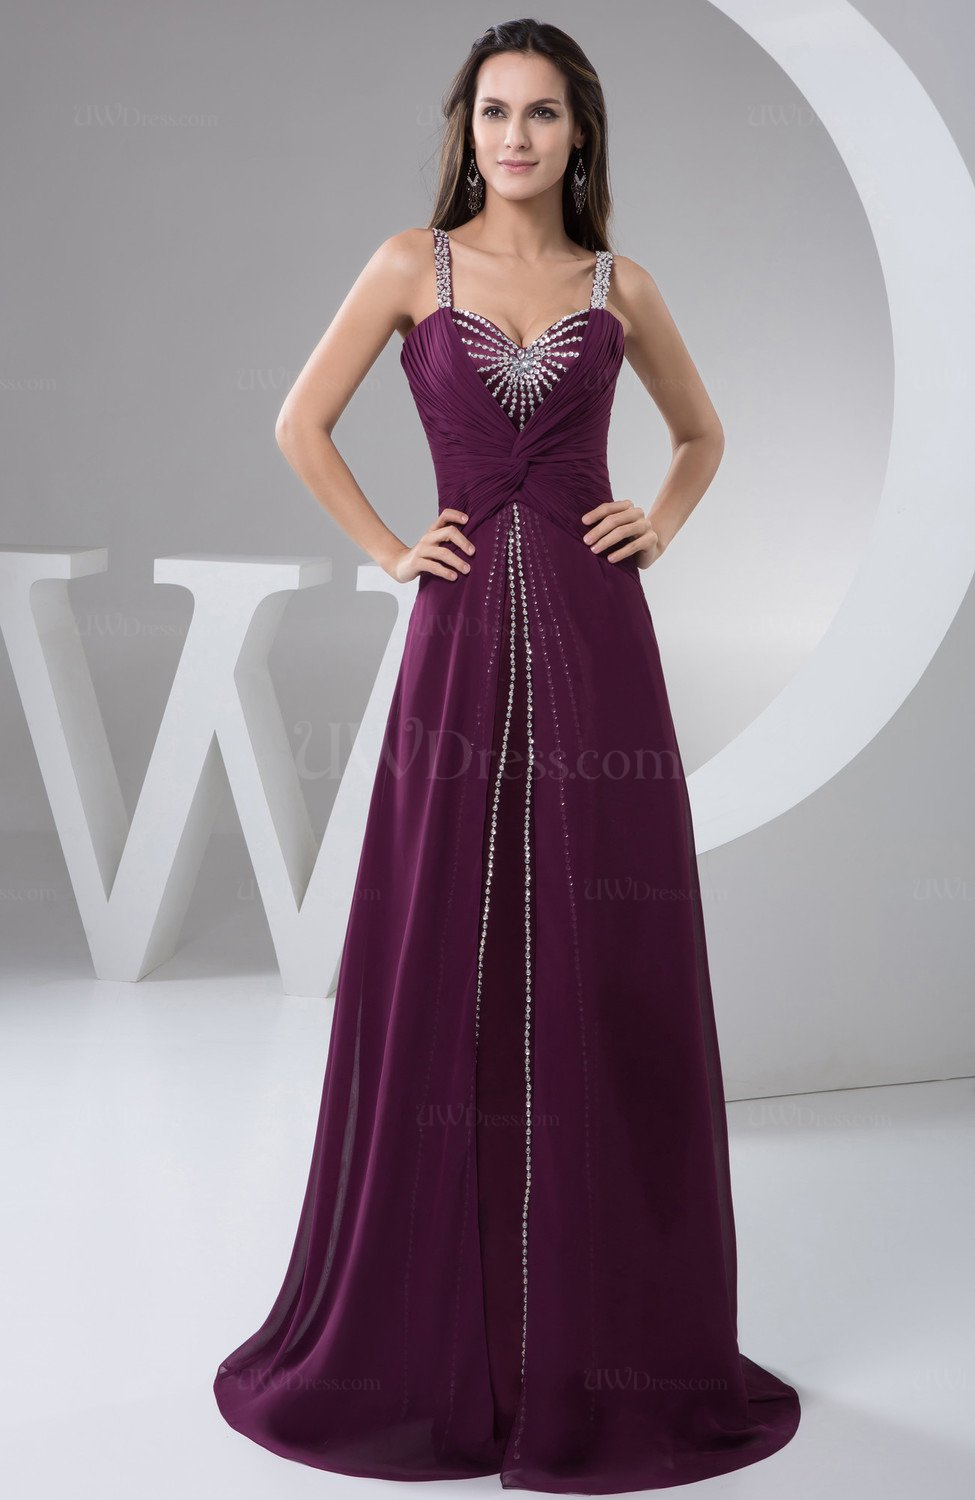 Unique Party Dress Inexpensive Semi Formal Glamorous Classic Trendy ...